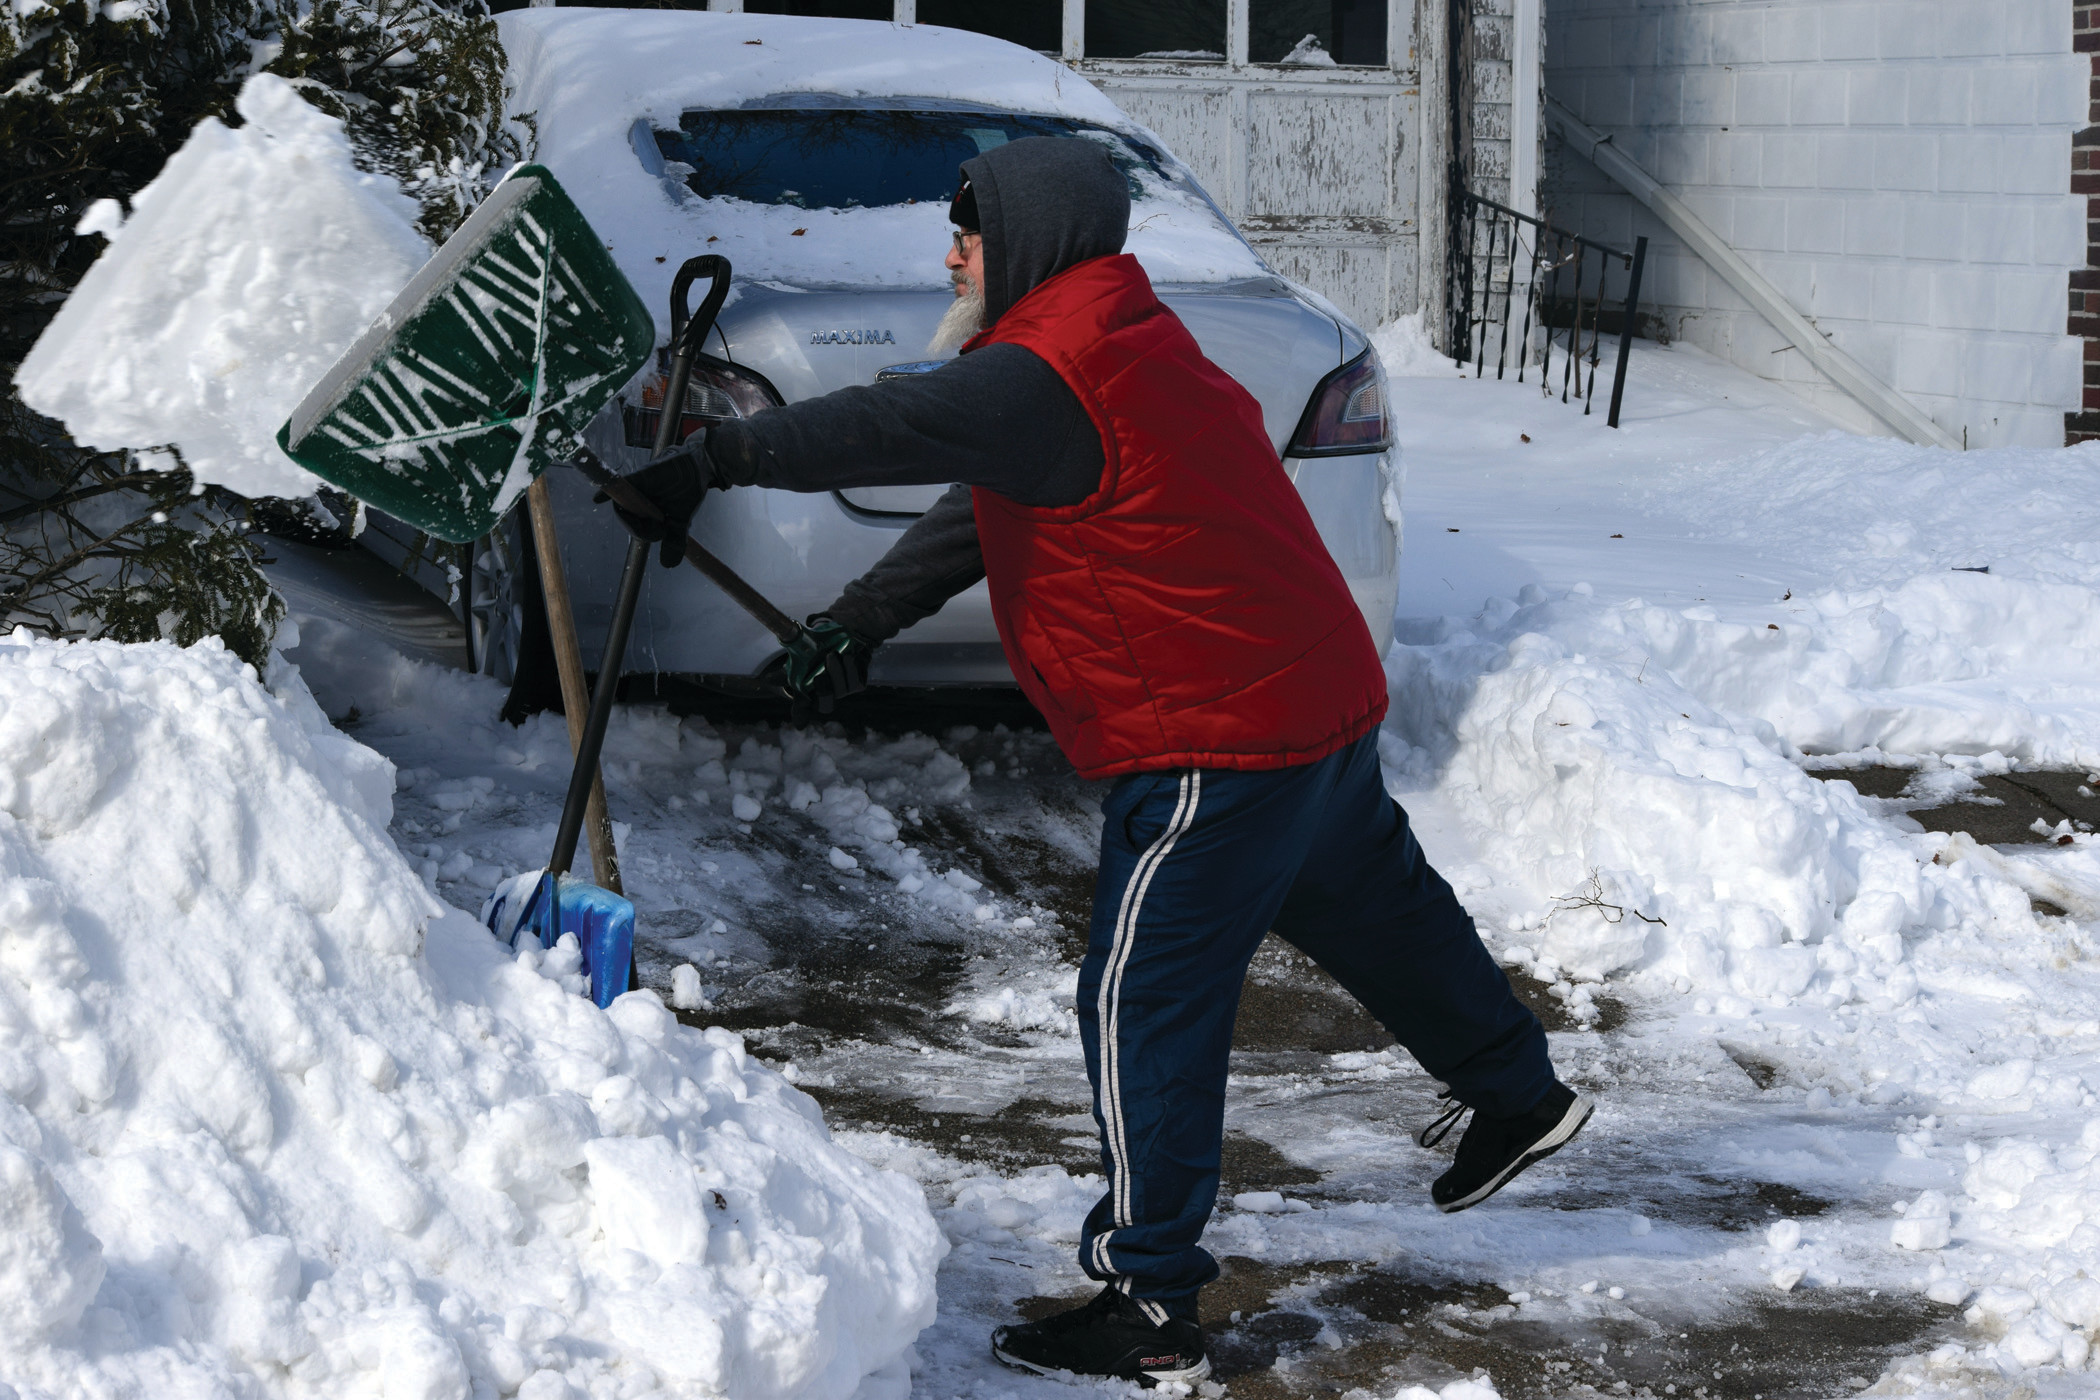 BATTLING WINTER: Kirk Wilcox, 55, shovels out his daughter's driveway on Friday morning. Thursday's blizzard hit Cranston with 12 inches of snow.